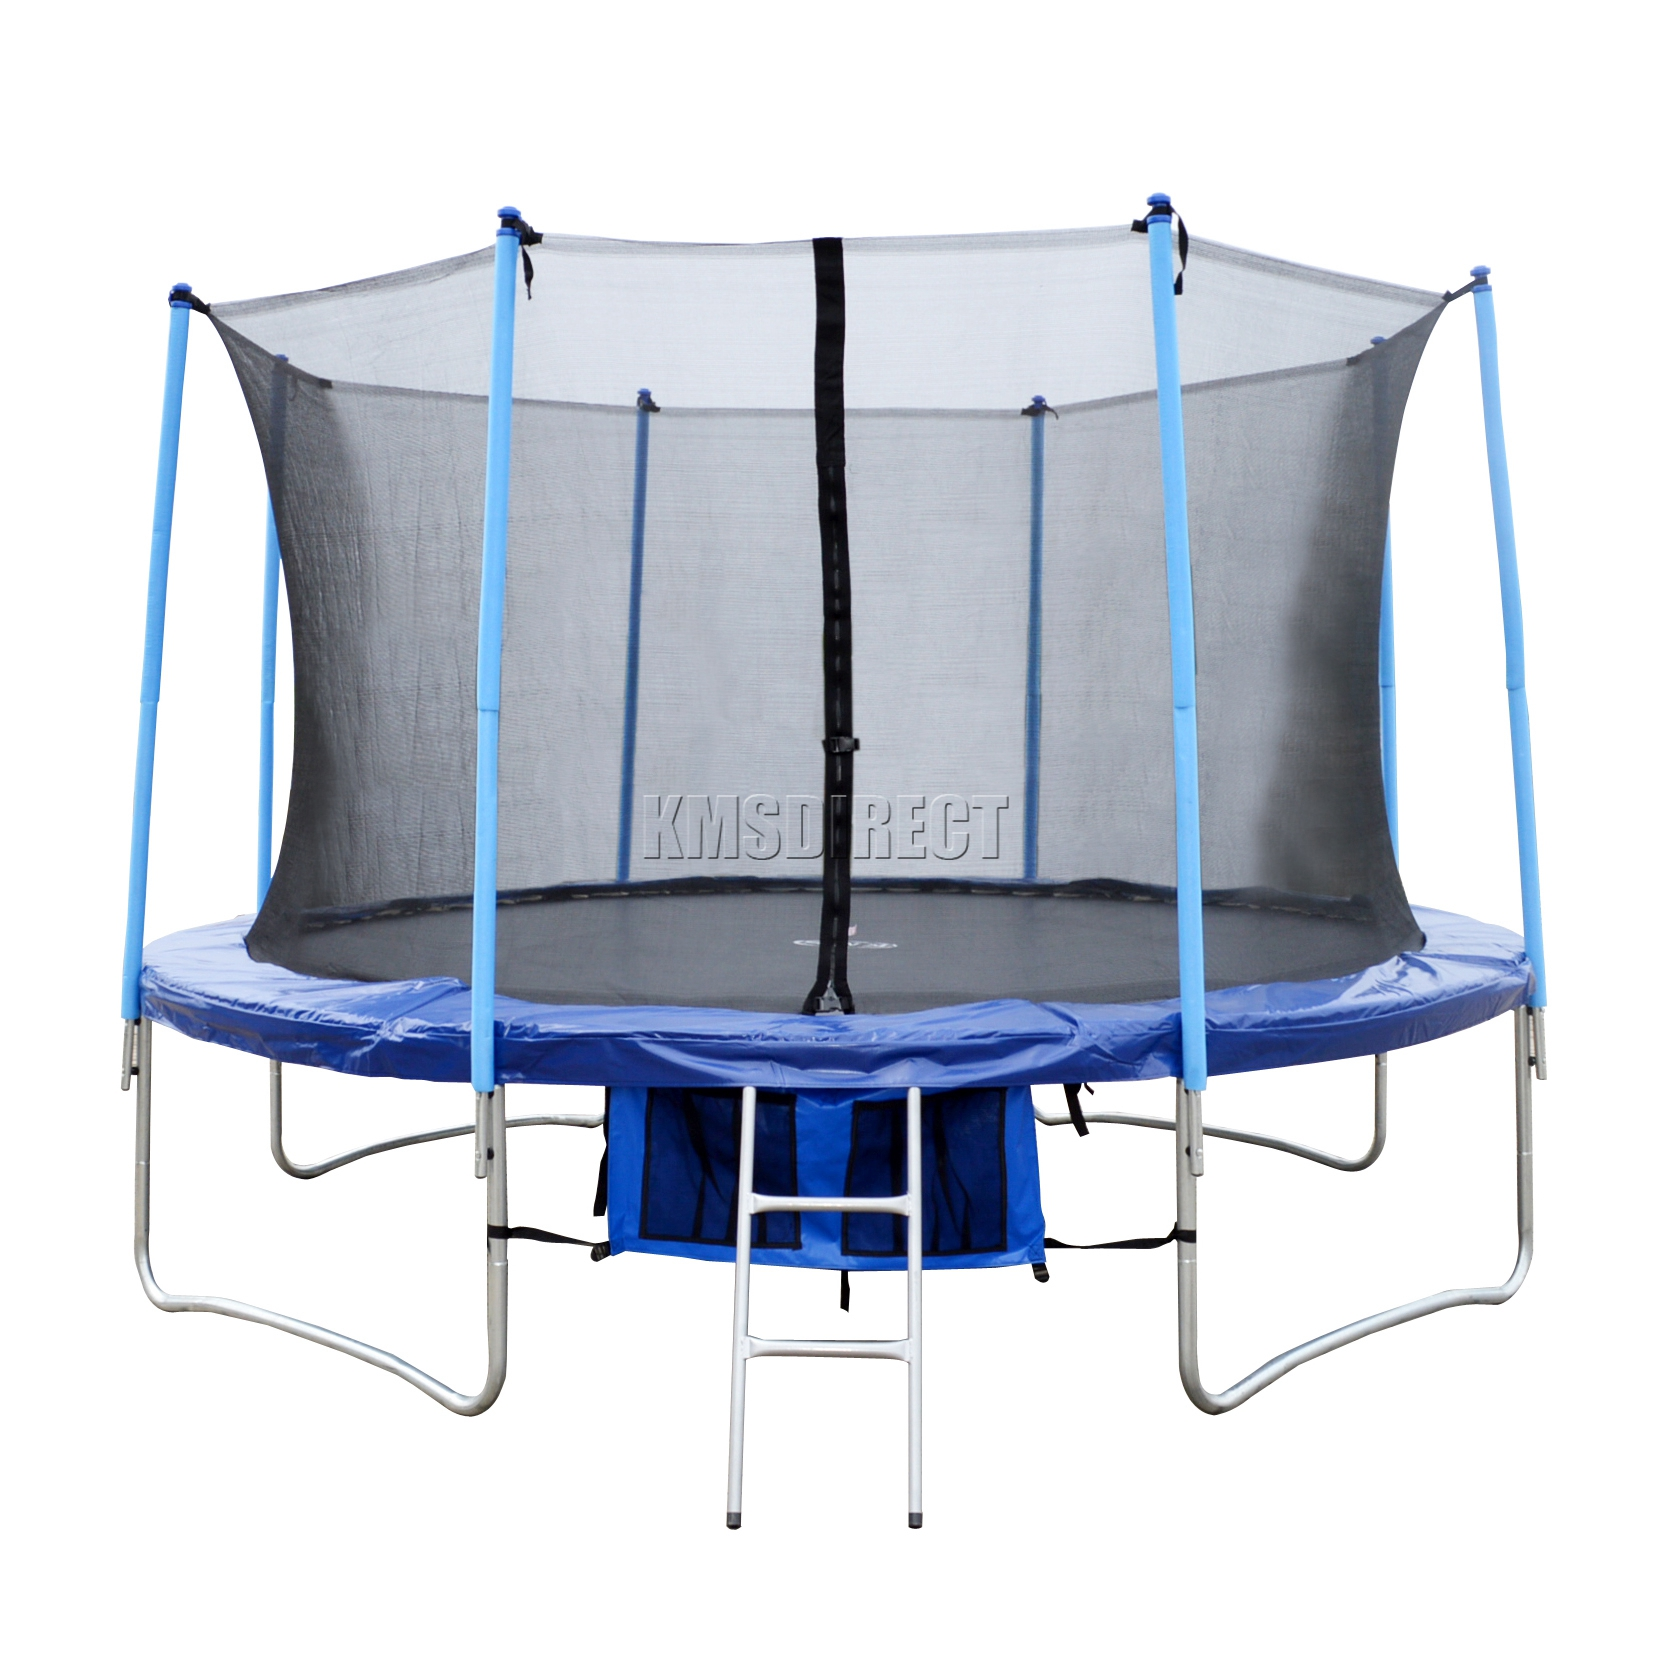 14ft Basic Trampoline Pad: 14FT Trampoline With Ladder Net Enclosure Safety Pad